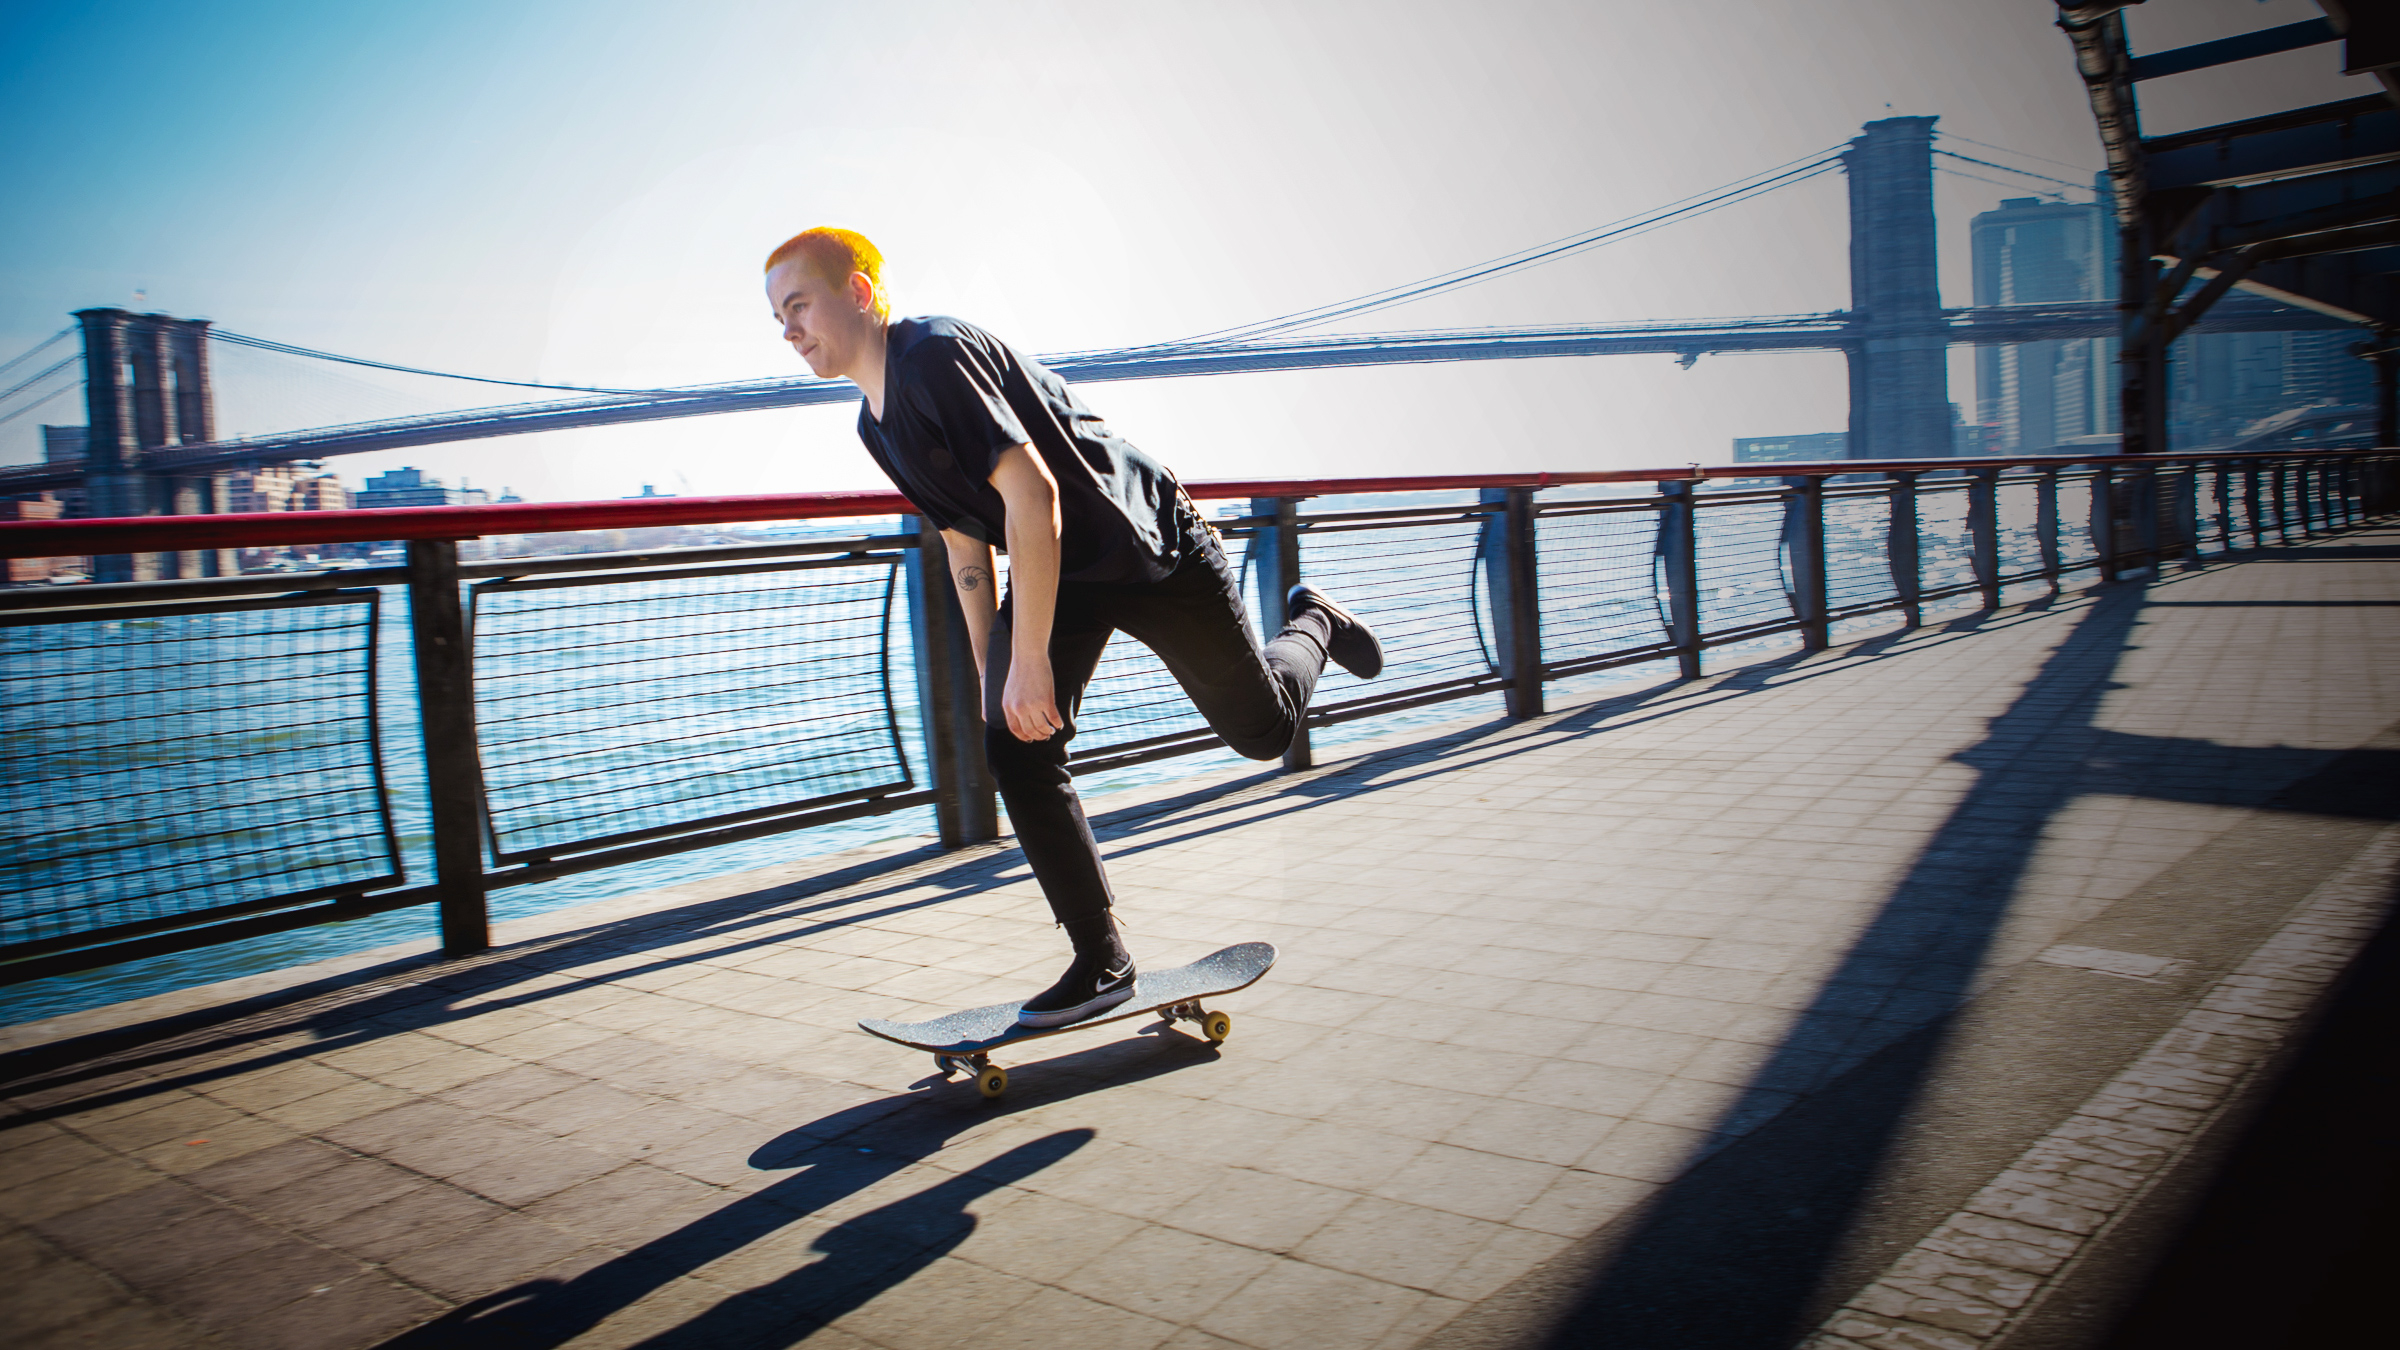 Lacey Baker  The Rebel Queen of Skateboarding – Rolling Stone c6fe5c558e1